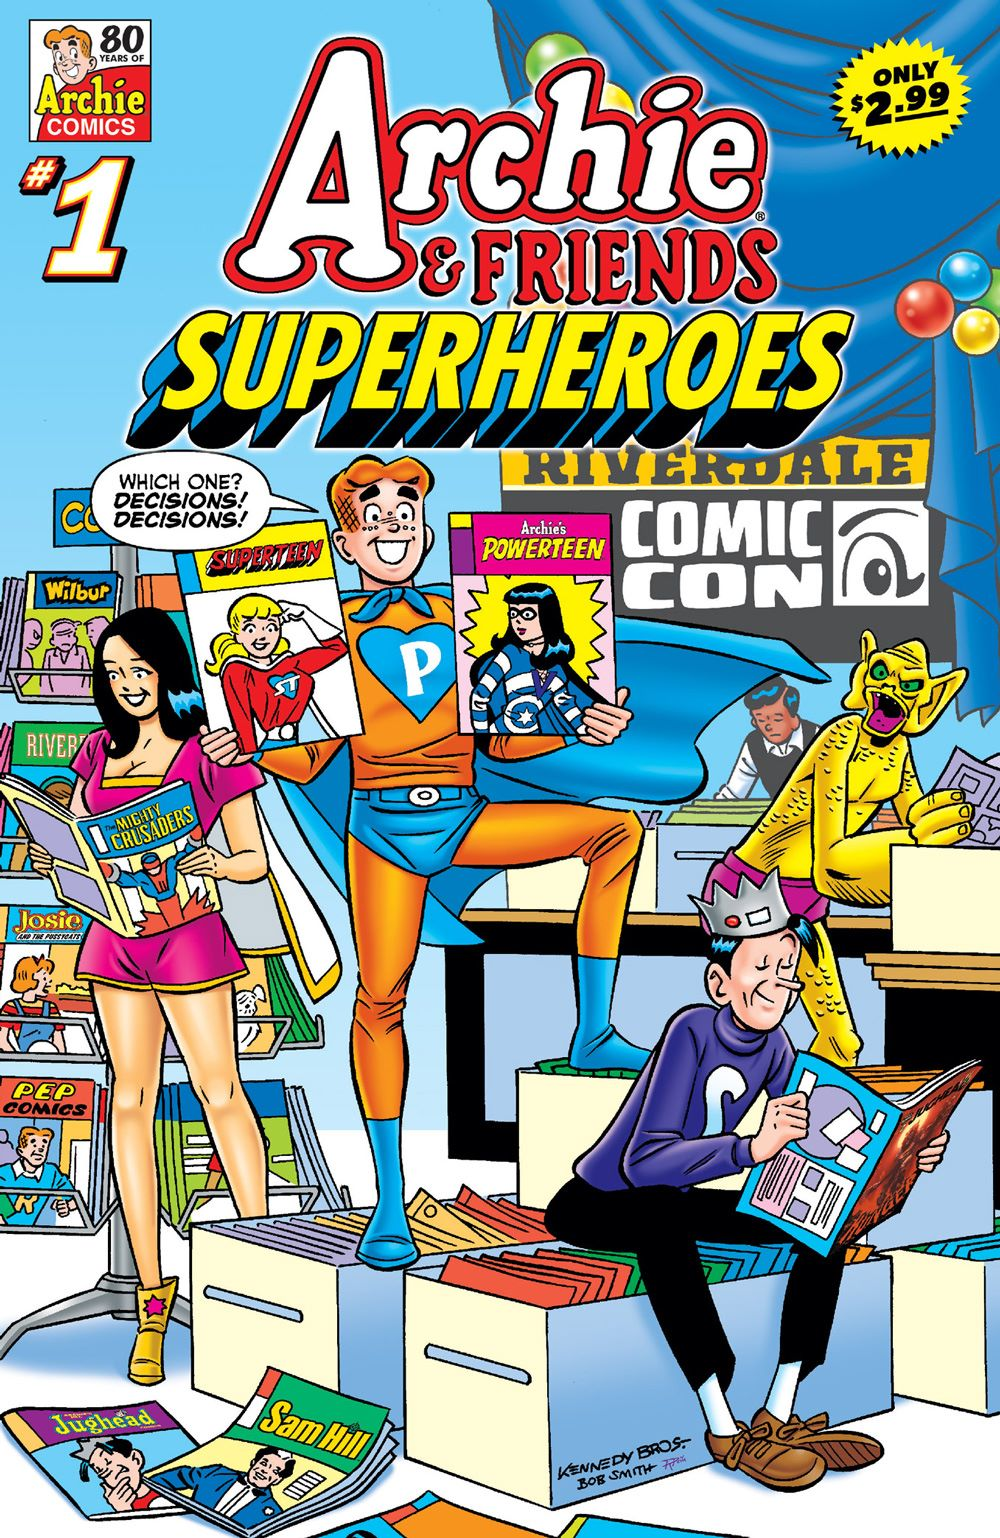 ArchieAndFriends_Superheroes_Cover_Kennedy ComicList Previews: ARCHIE AND FRIENDS SUPERHEROES #1